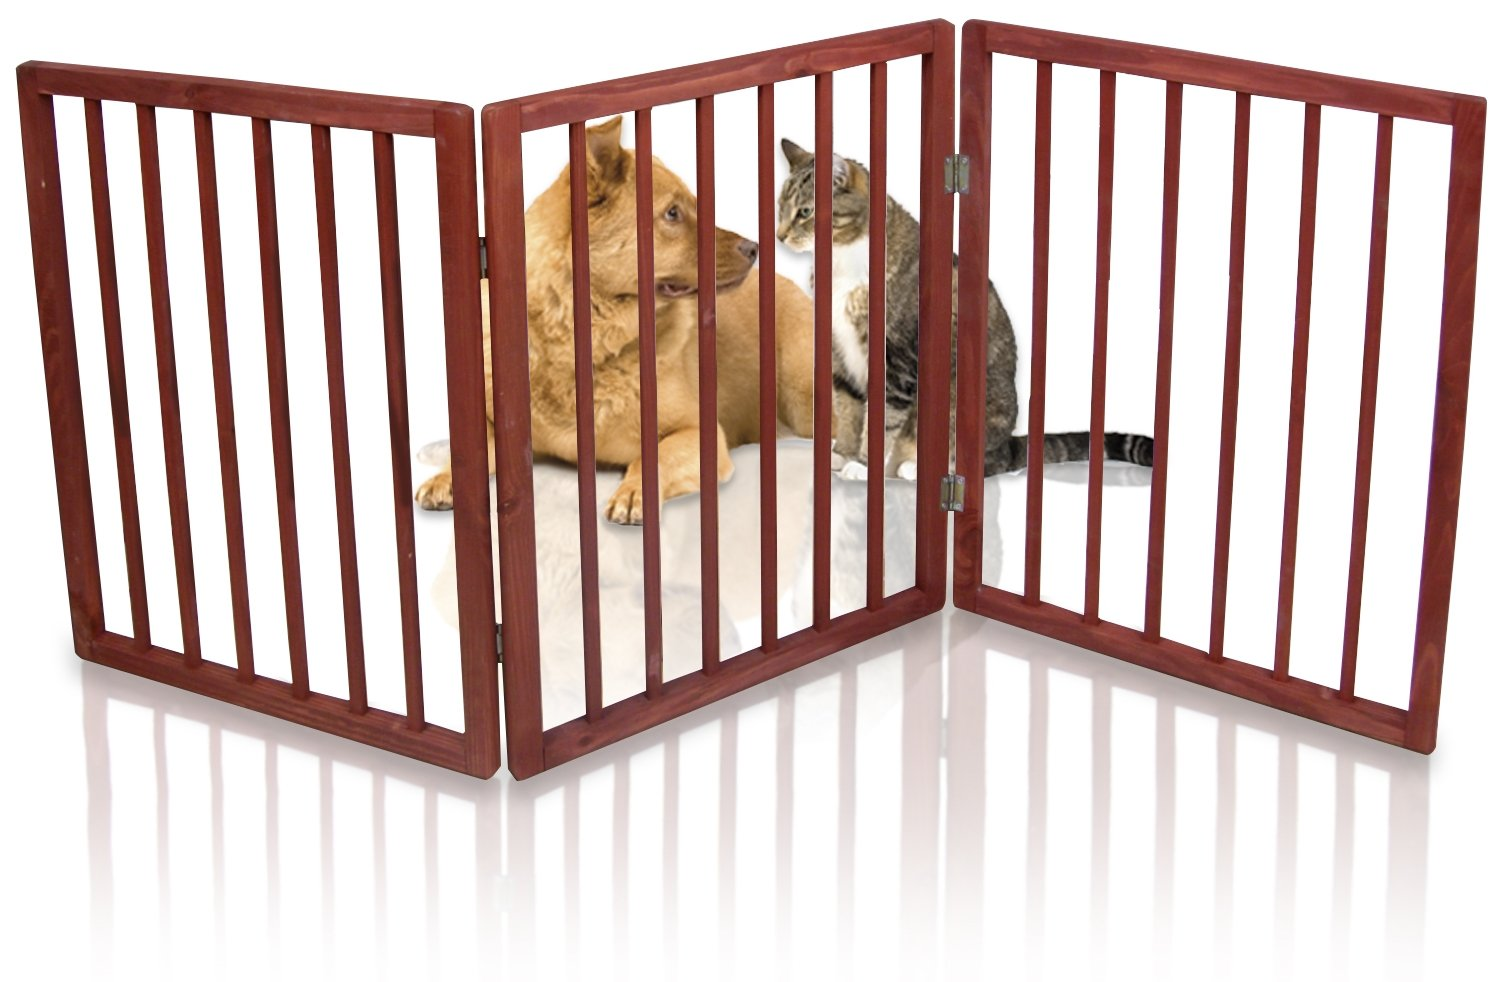 Kleeger Freestanding Folding Indoor Safety Wooden Pet Gate For Home Or Office